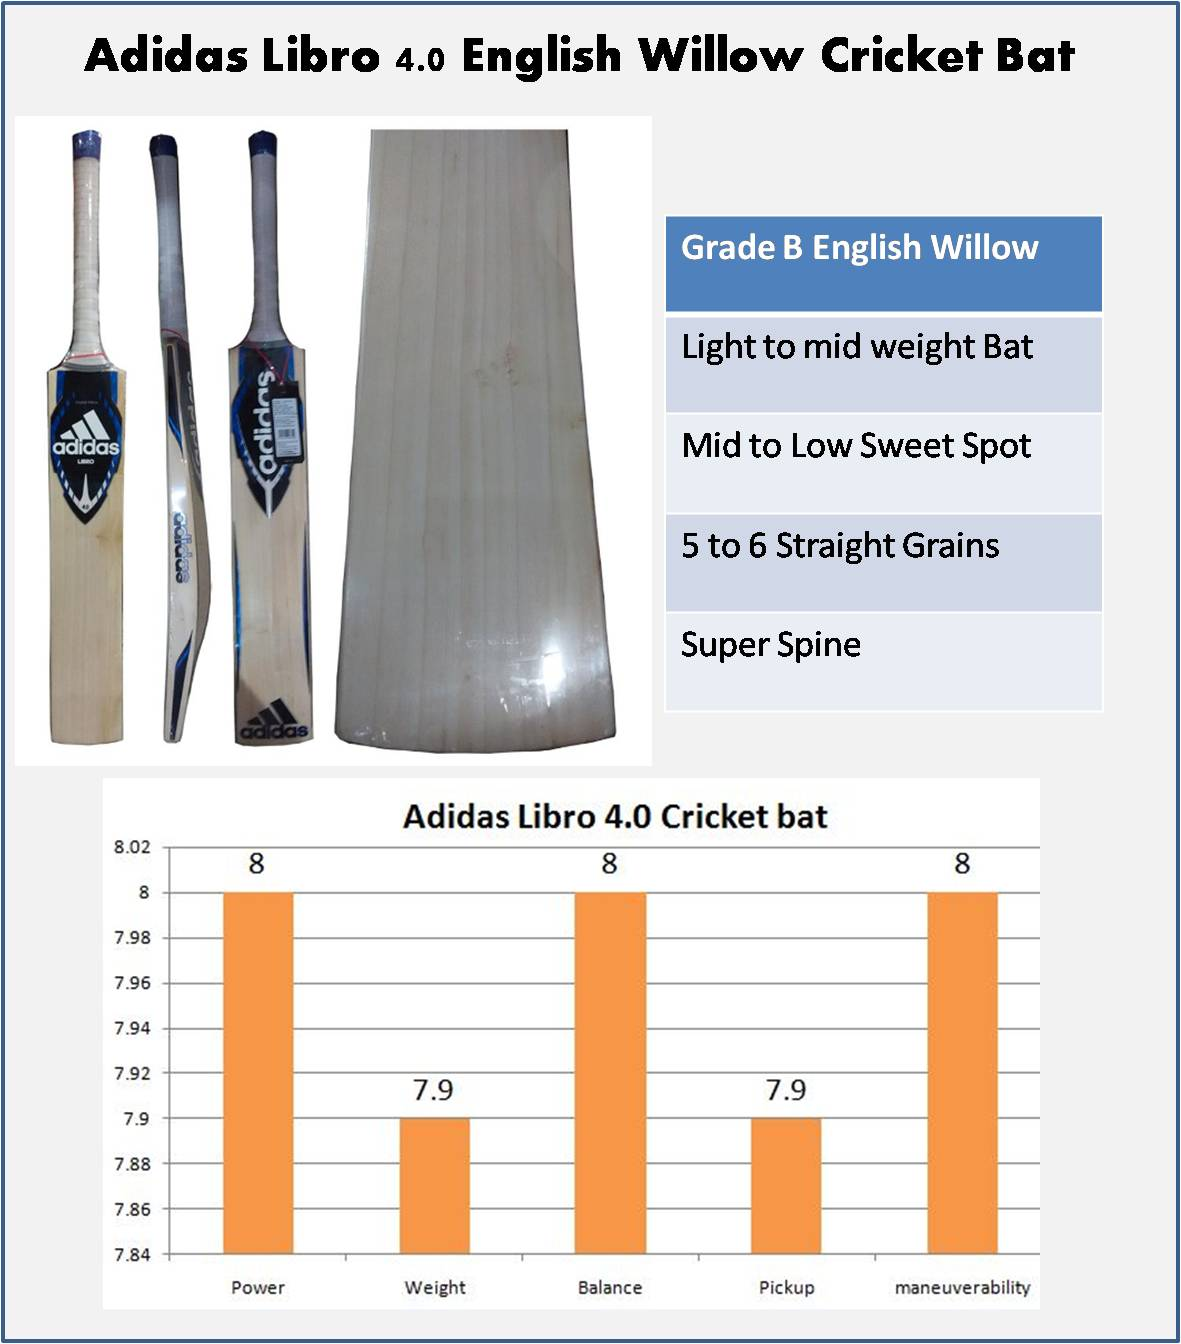 Detail Image of Adidas Libro 4.0 English Willow Cricket Bat